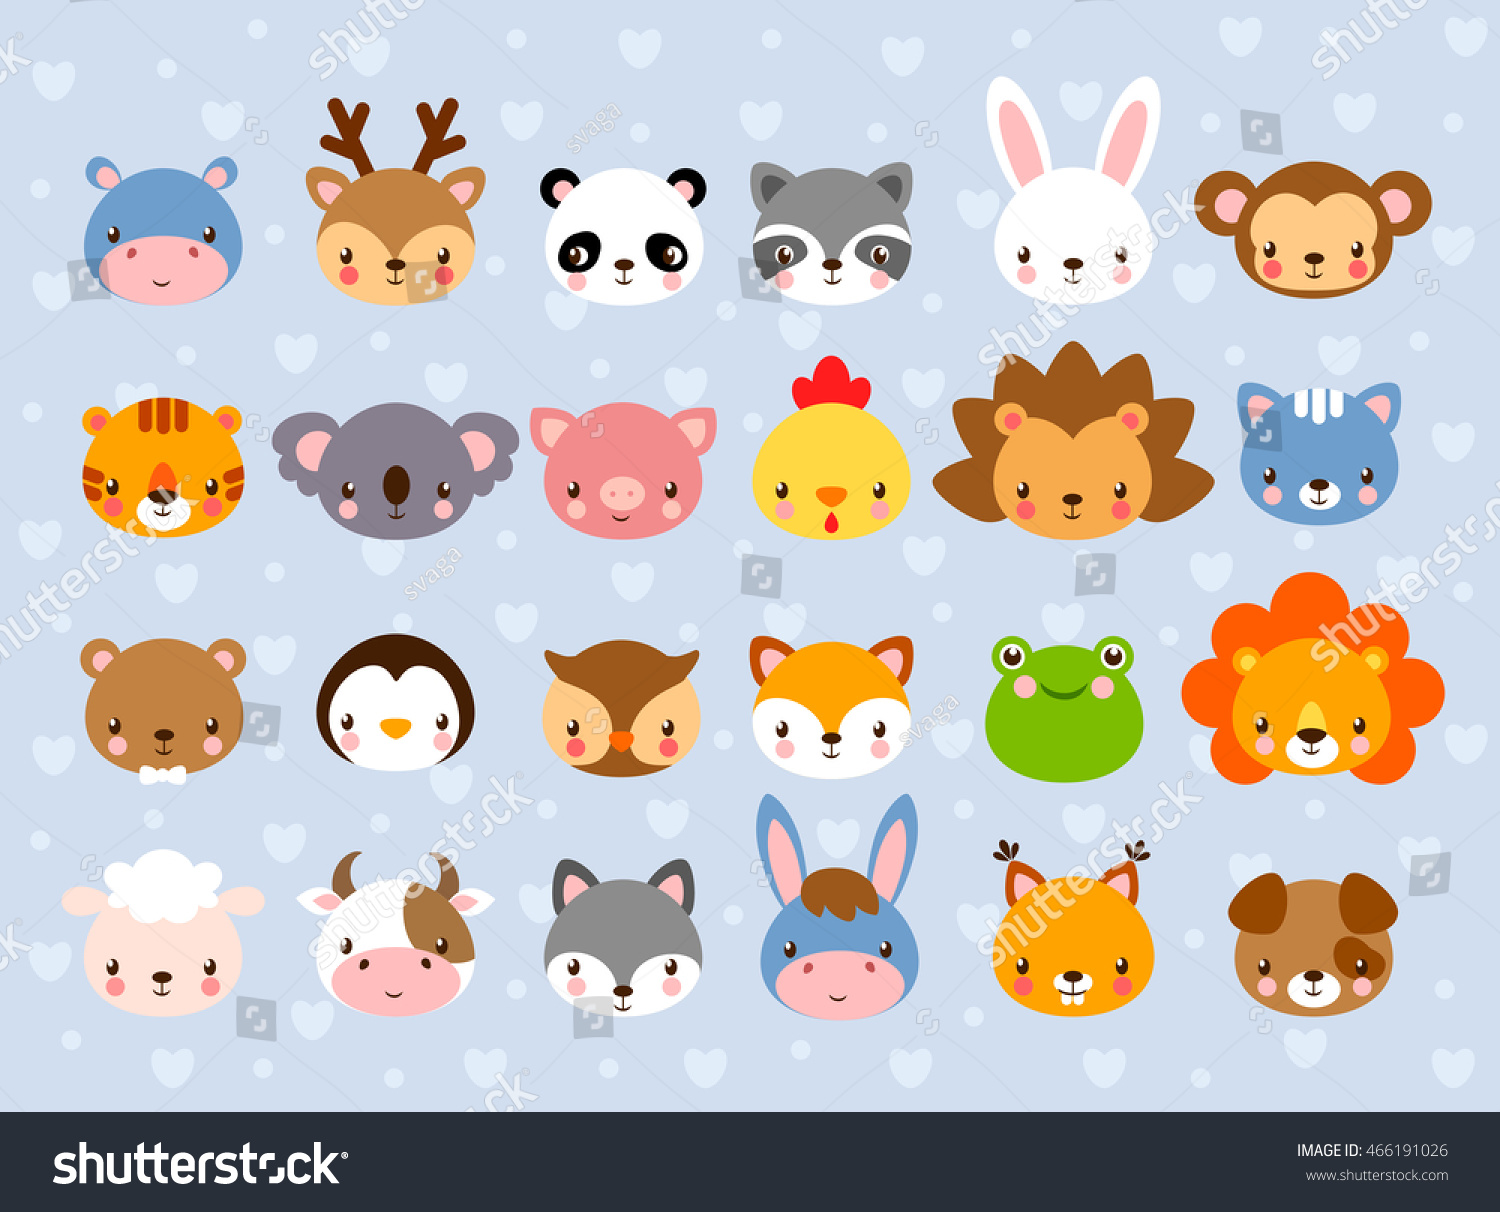 Big vector set animal faces collection 466191026 big vector set with animal faces collection of cute baby animals in cartoon style on voltagebd Images